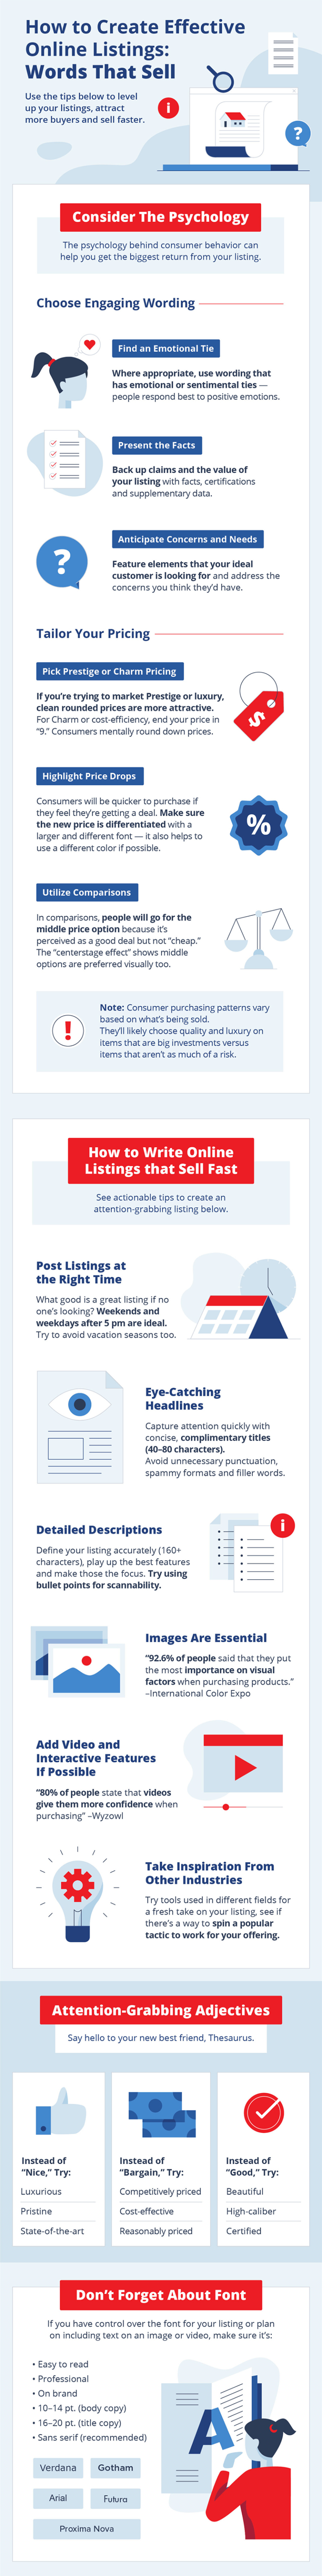 How to create online listings that sell